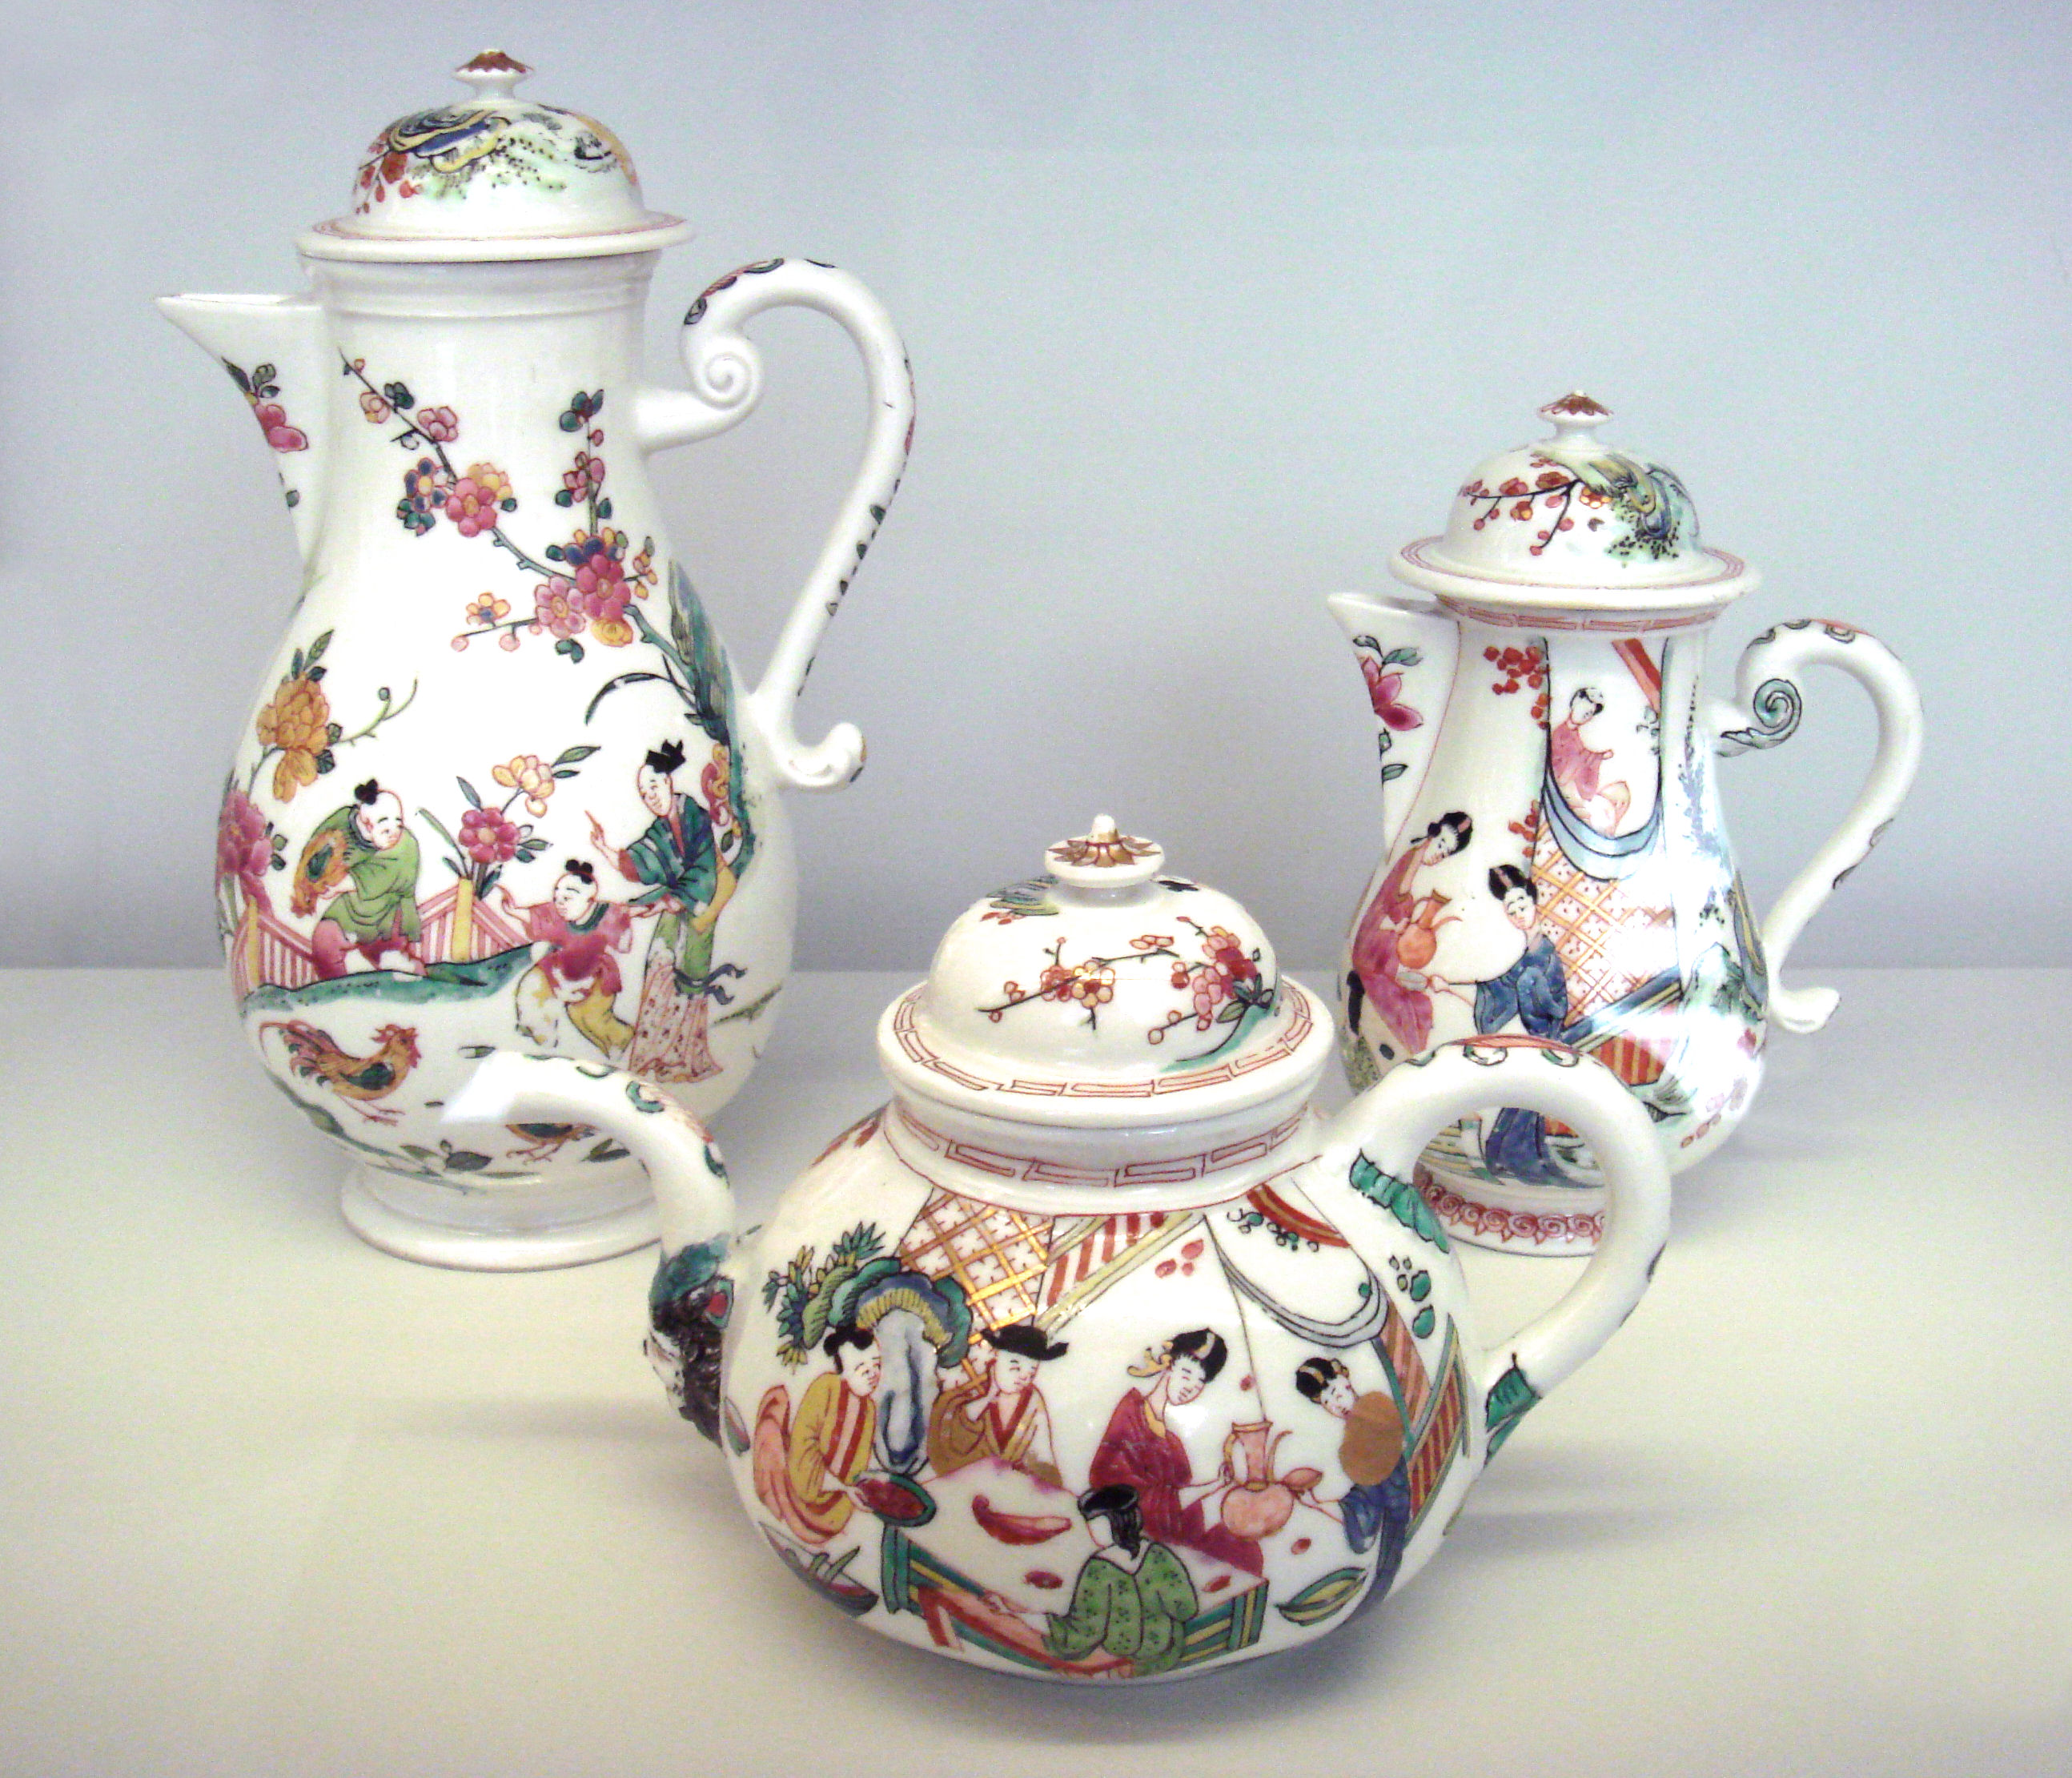 file meissen hard porcelain teapots circa 1720 decorated in the netherlands circa. Black Bedroom Furniture Sets. Home Design Ideas